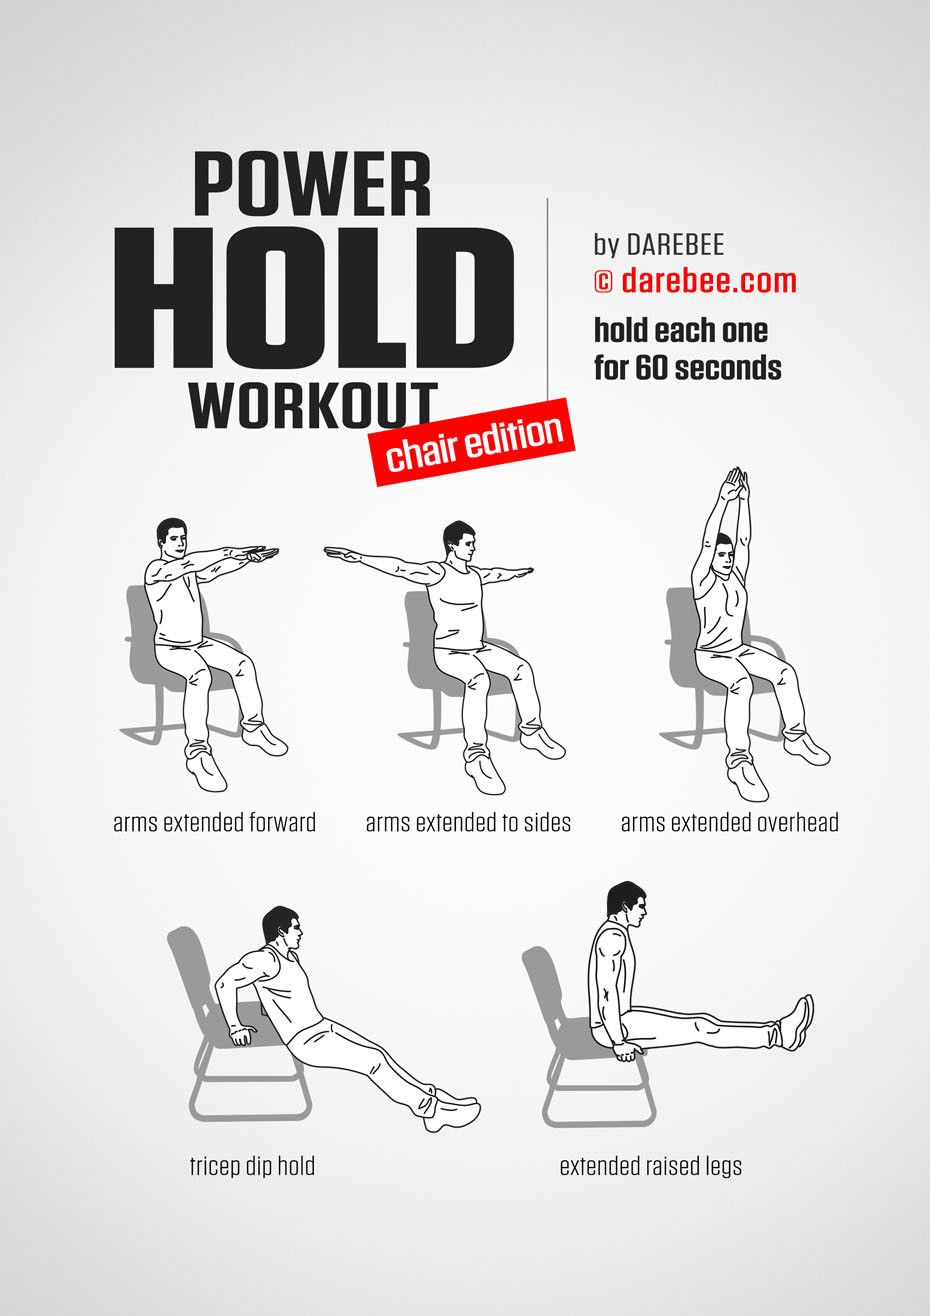 Office Chair Workout 2021 In 2020 Abdominal Exercises Office Chair Workout Workout